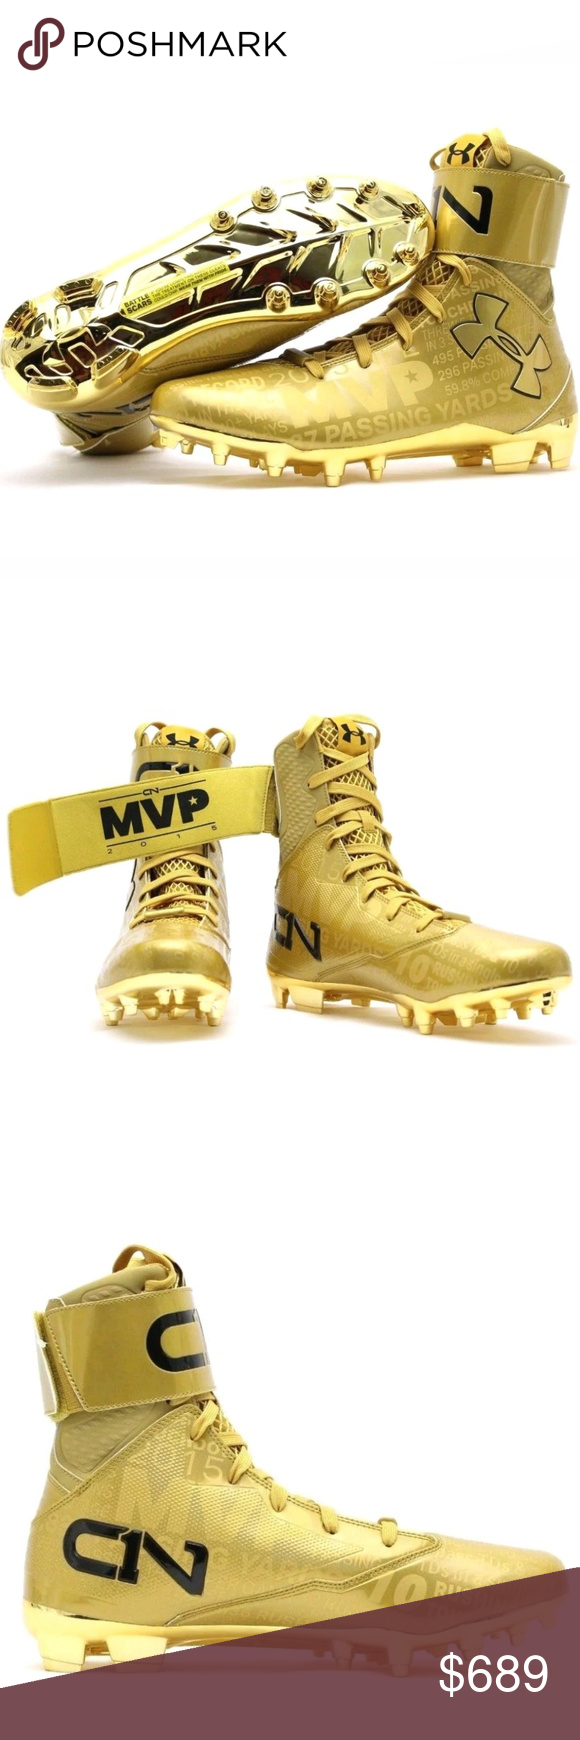 c1n cleats gold off 58% - www